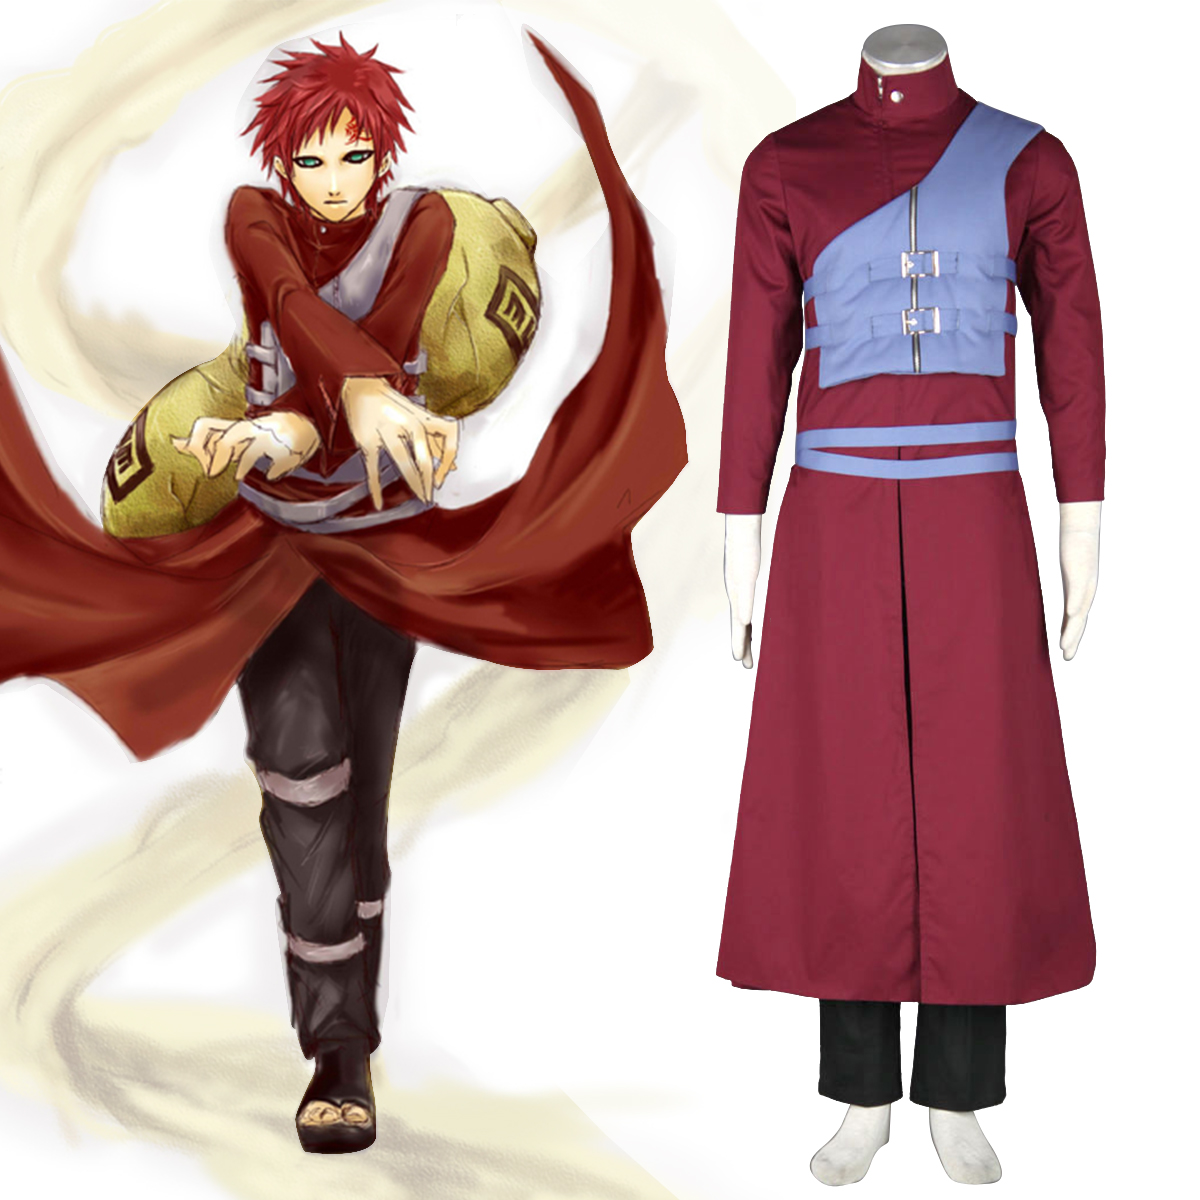 Naruto Shippuden Gaara 7 Anime Cosplay Costumes Outfit